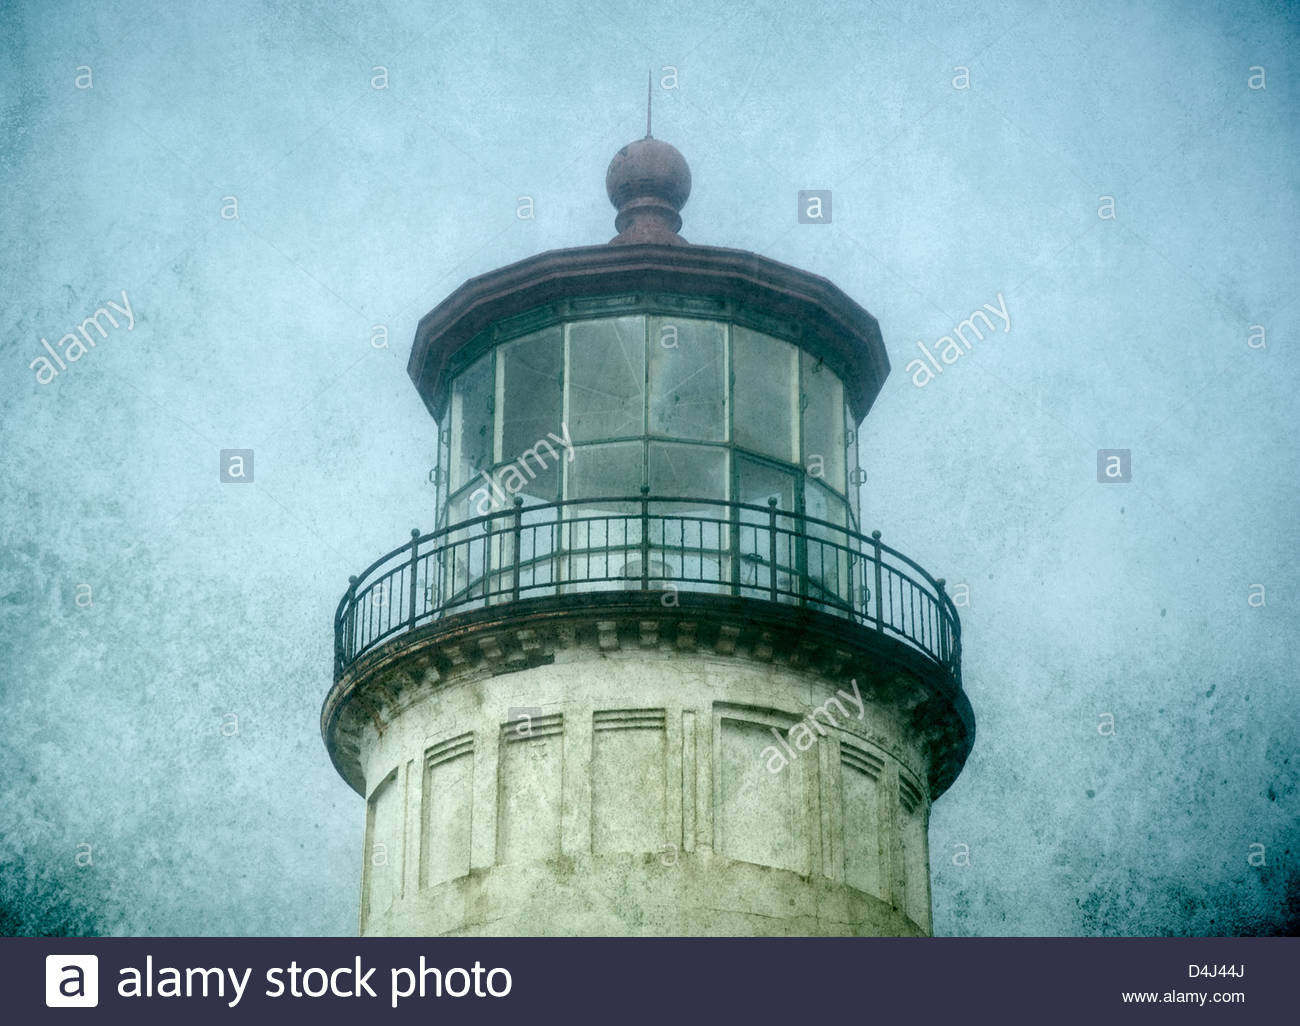 Lighthouse tower at Cape Disappointment State Park, Washington, USA - Stock Image